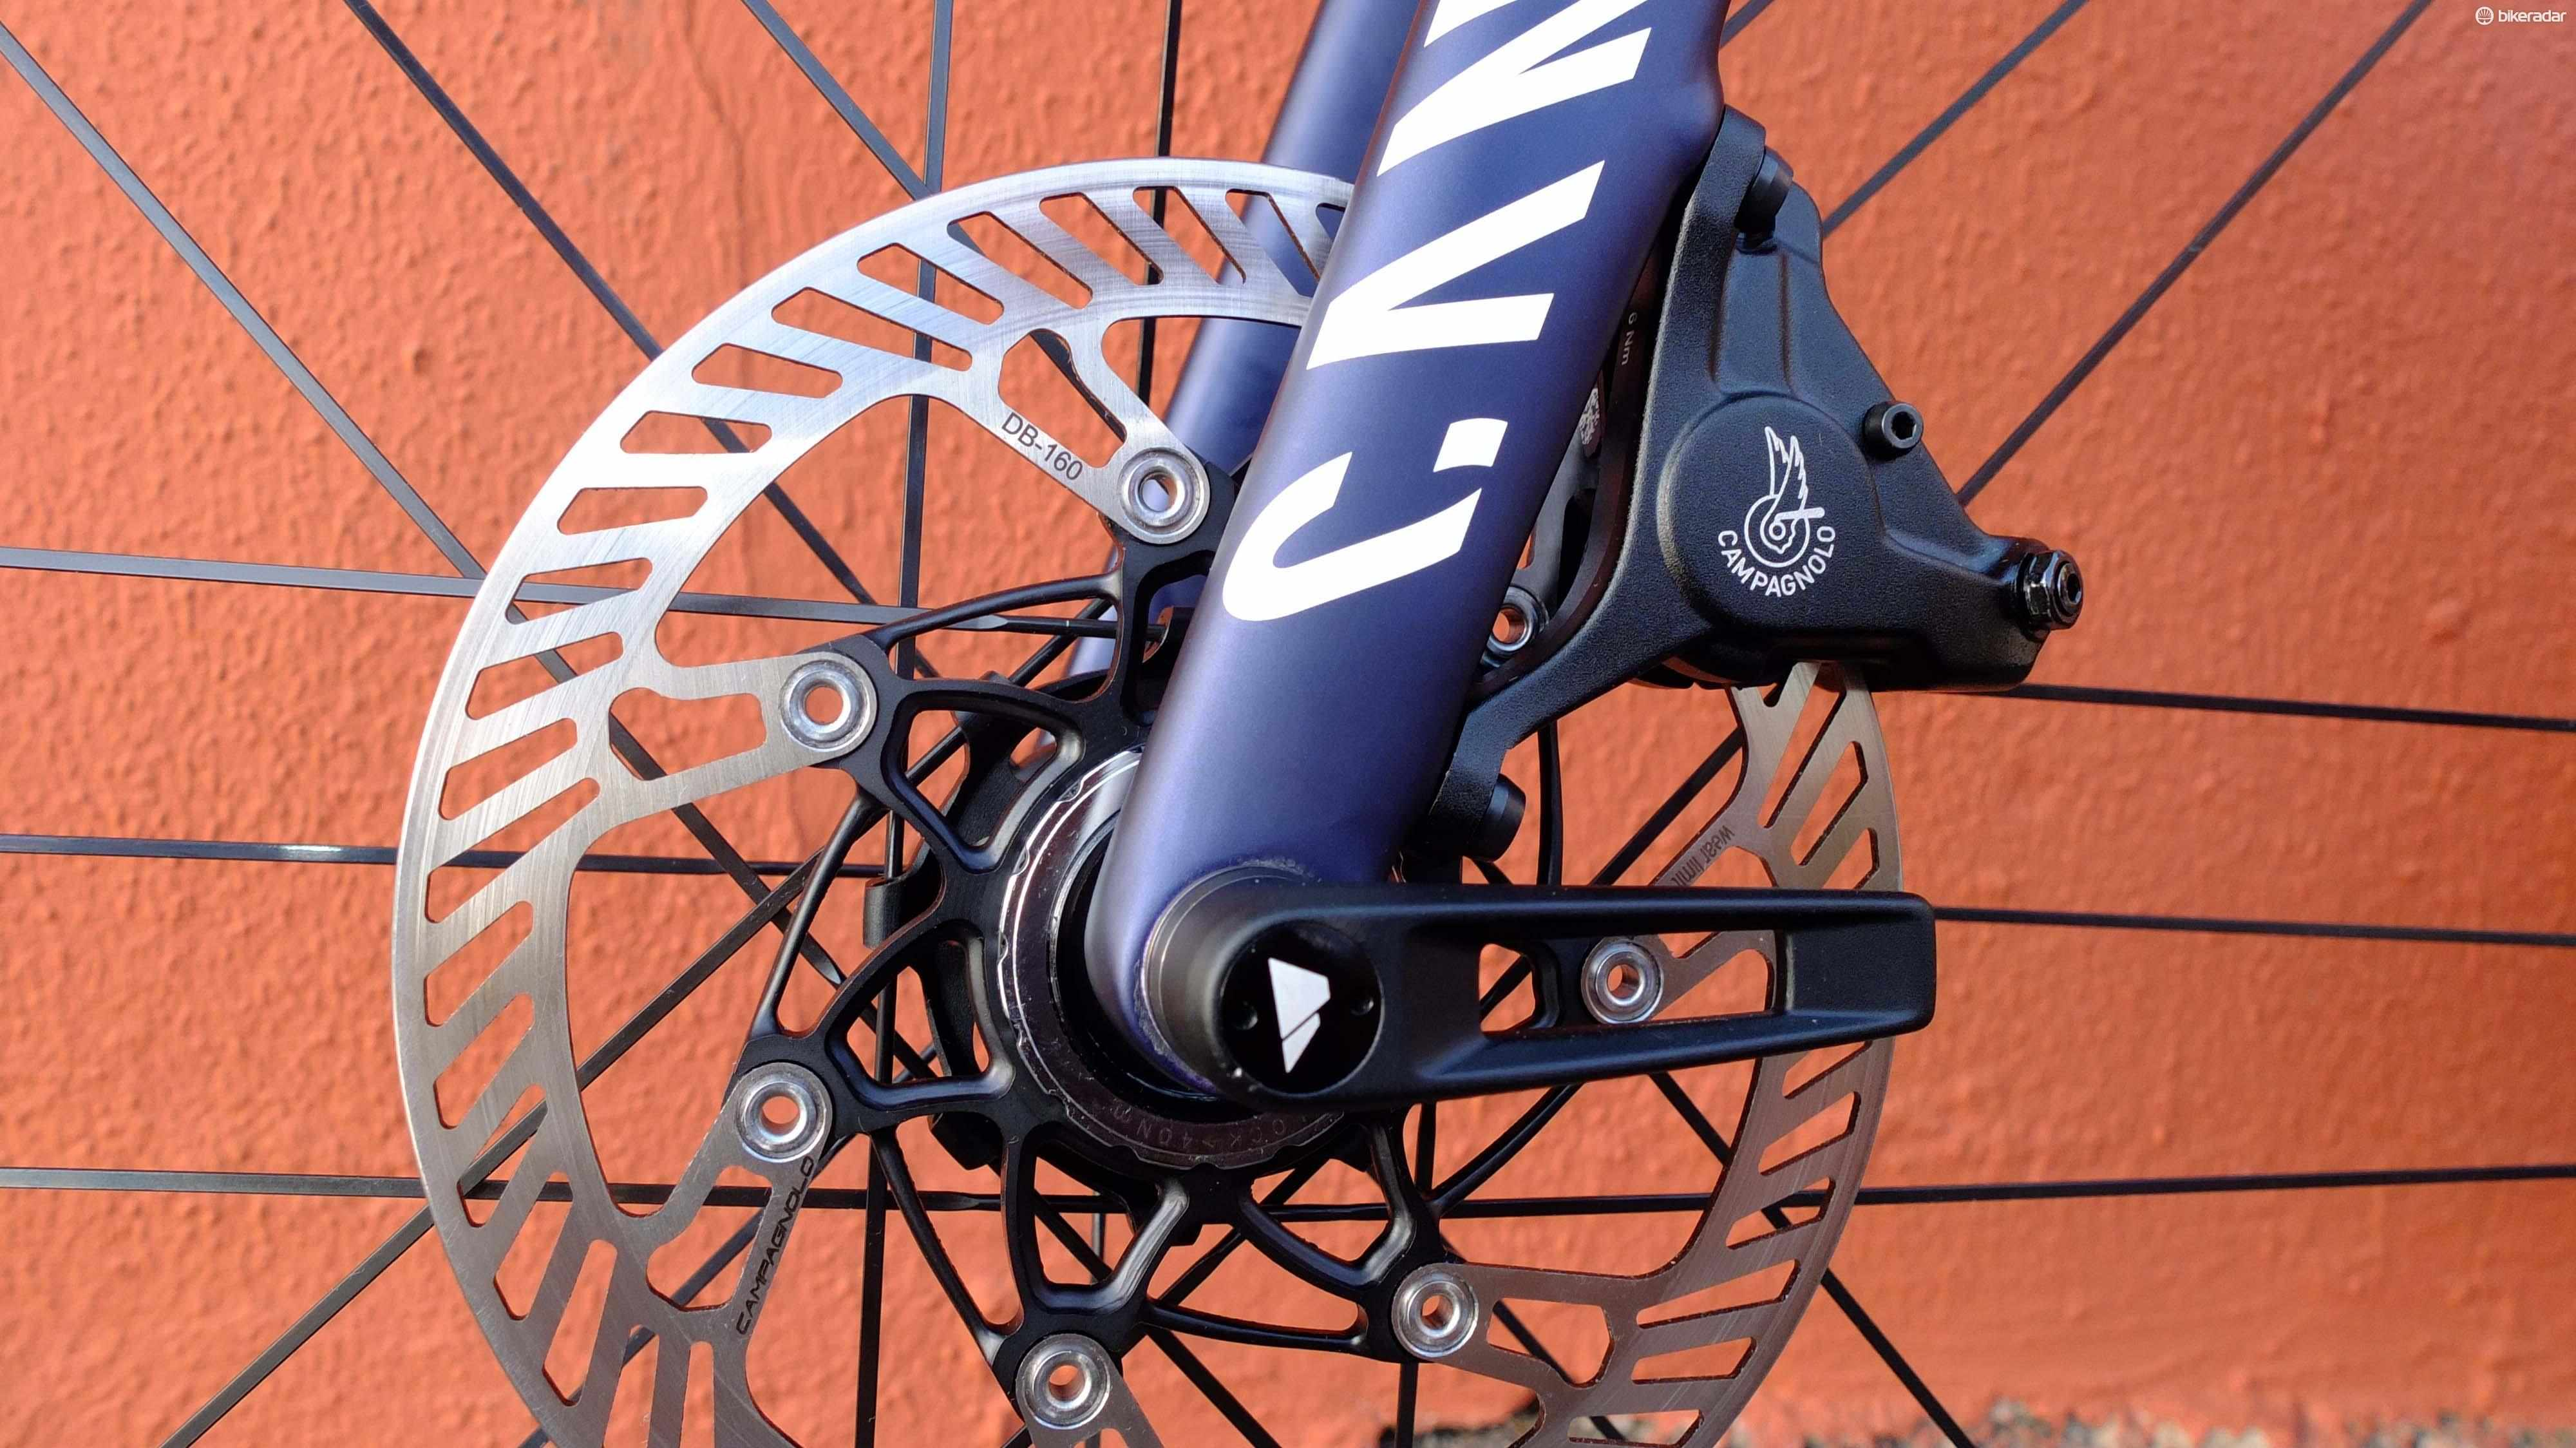 A year since we first saw them, Campagnolo's disc brakes have finally landed